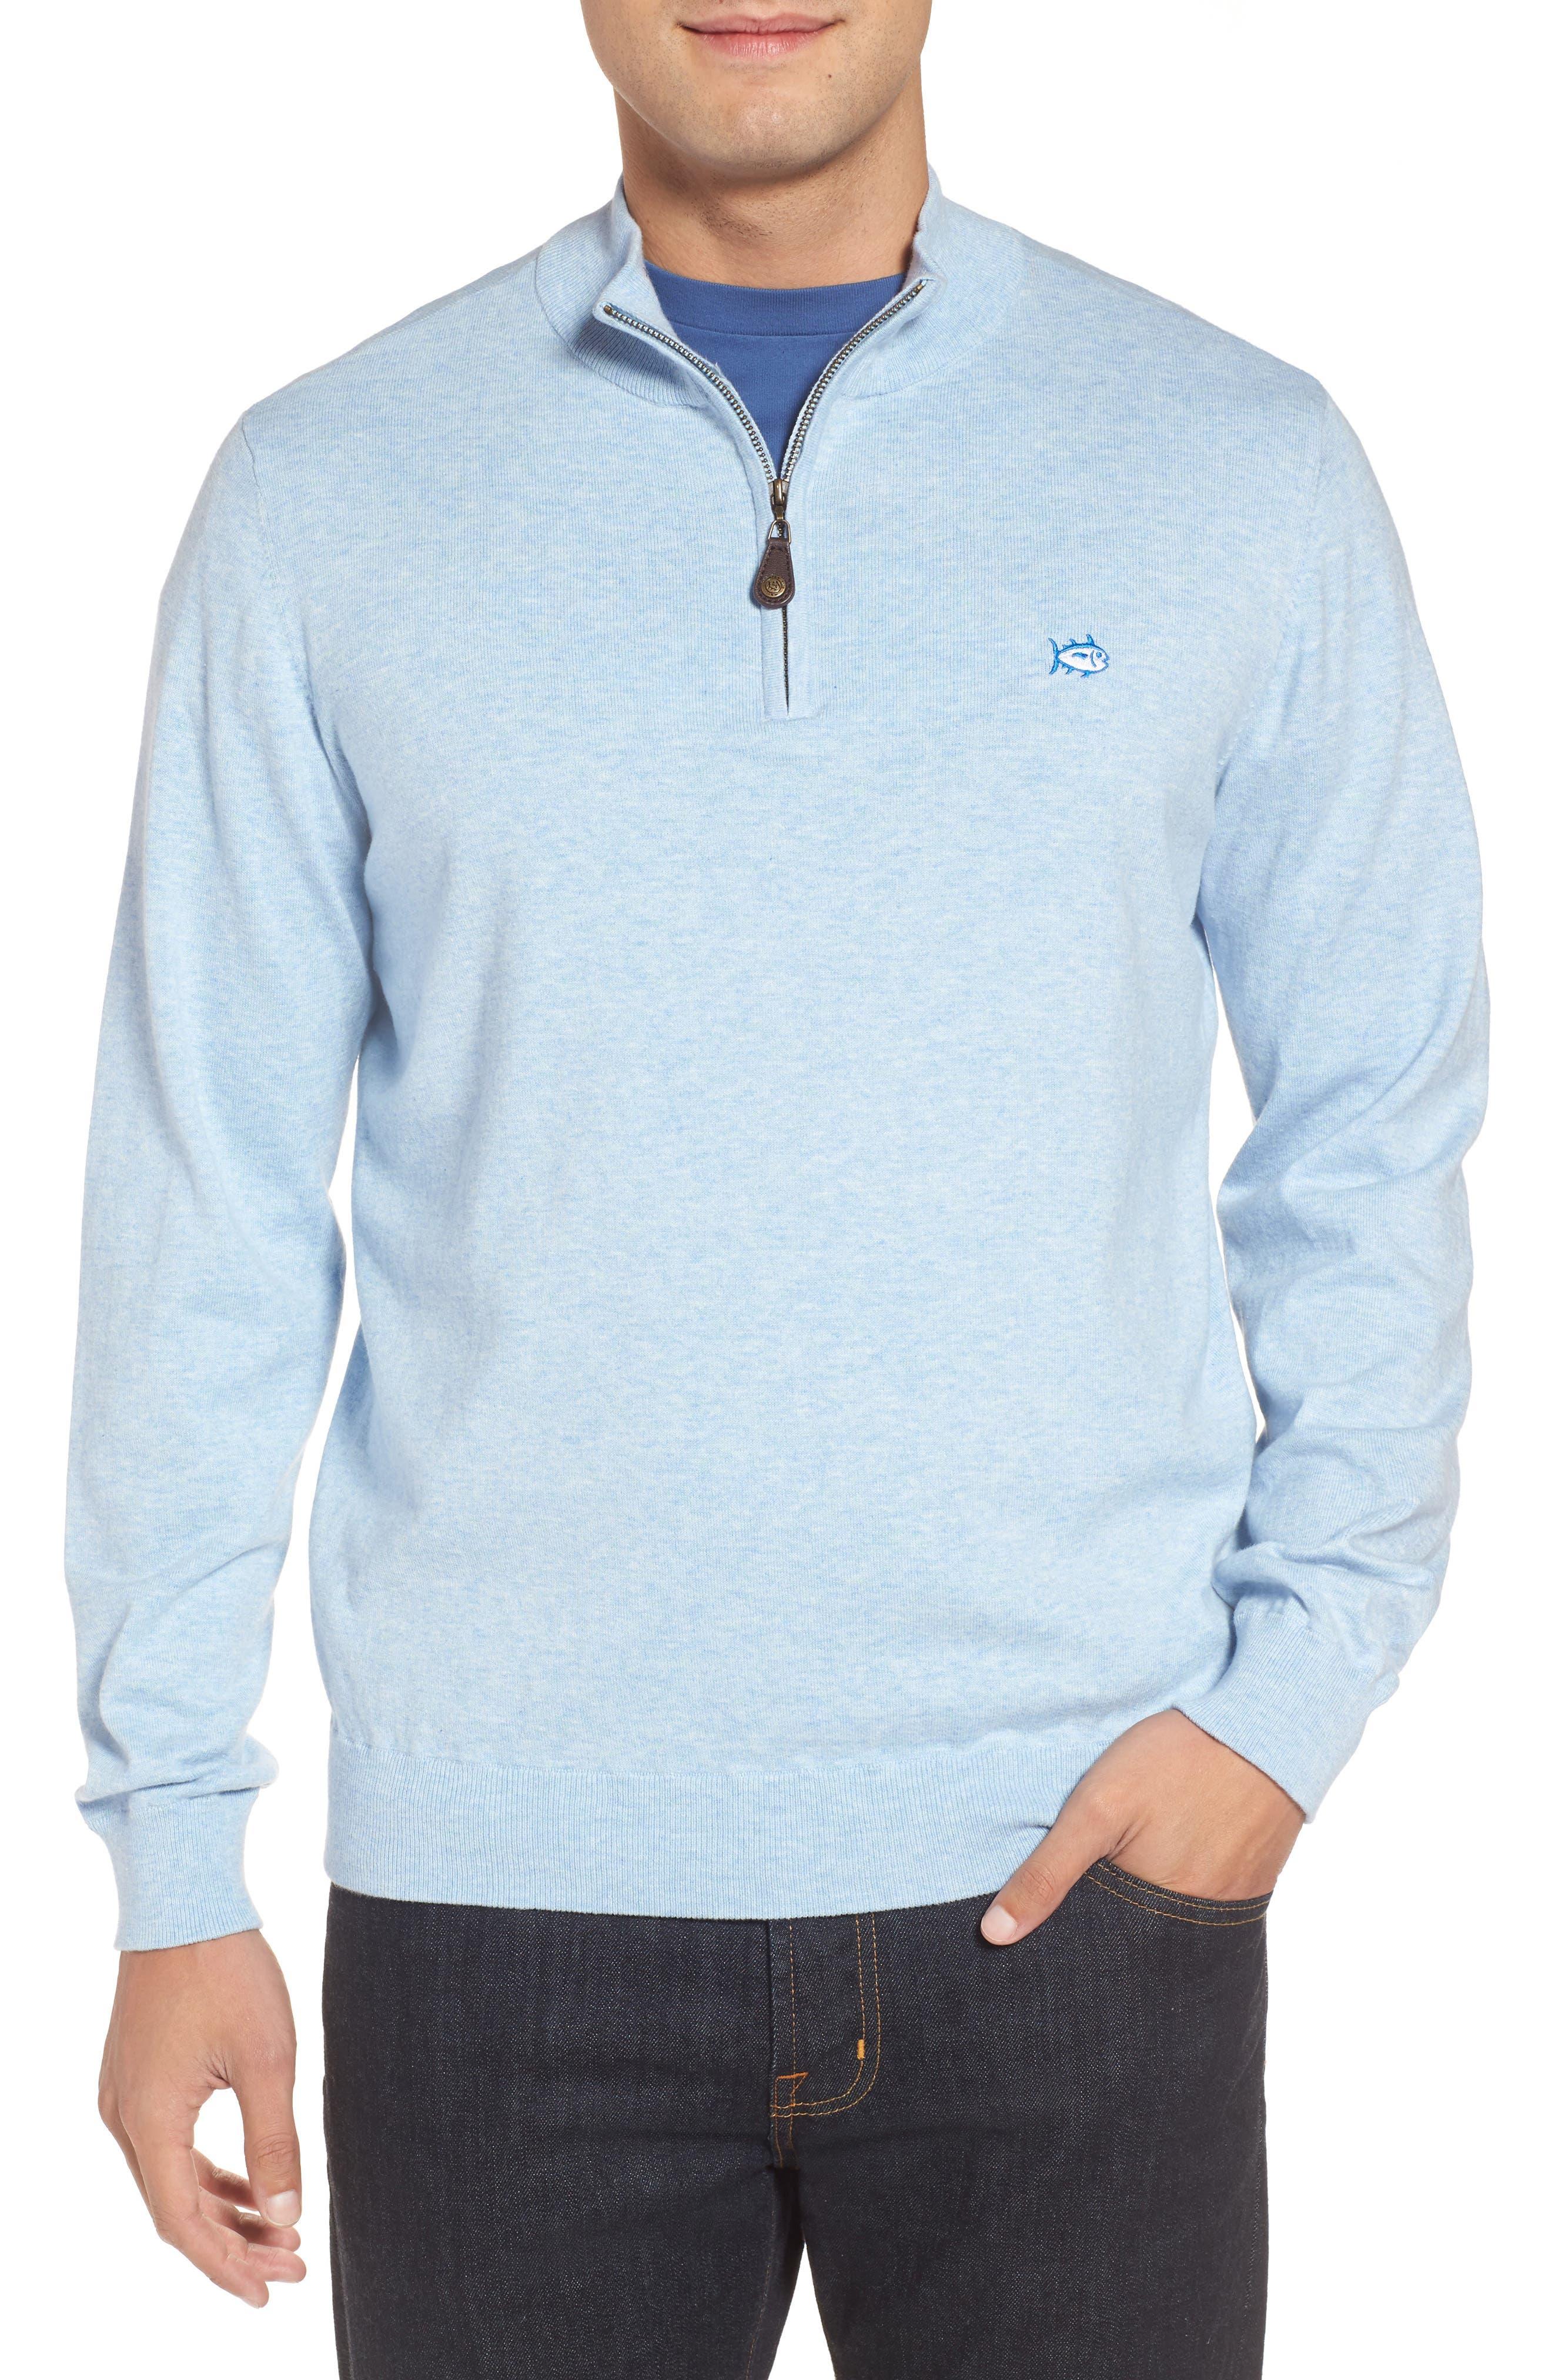 Marina Cay Quarter Zip Pullover,                         Main,                         color, OCEAN CHANNEL